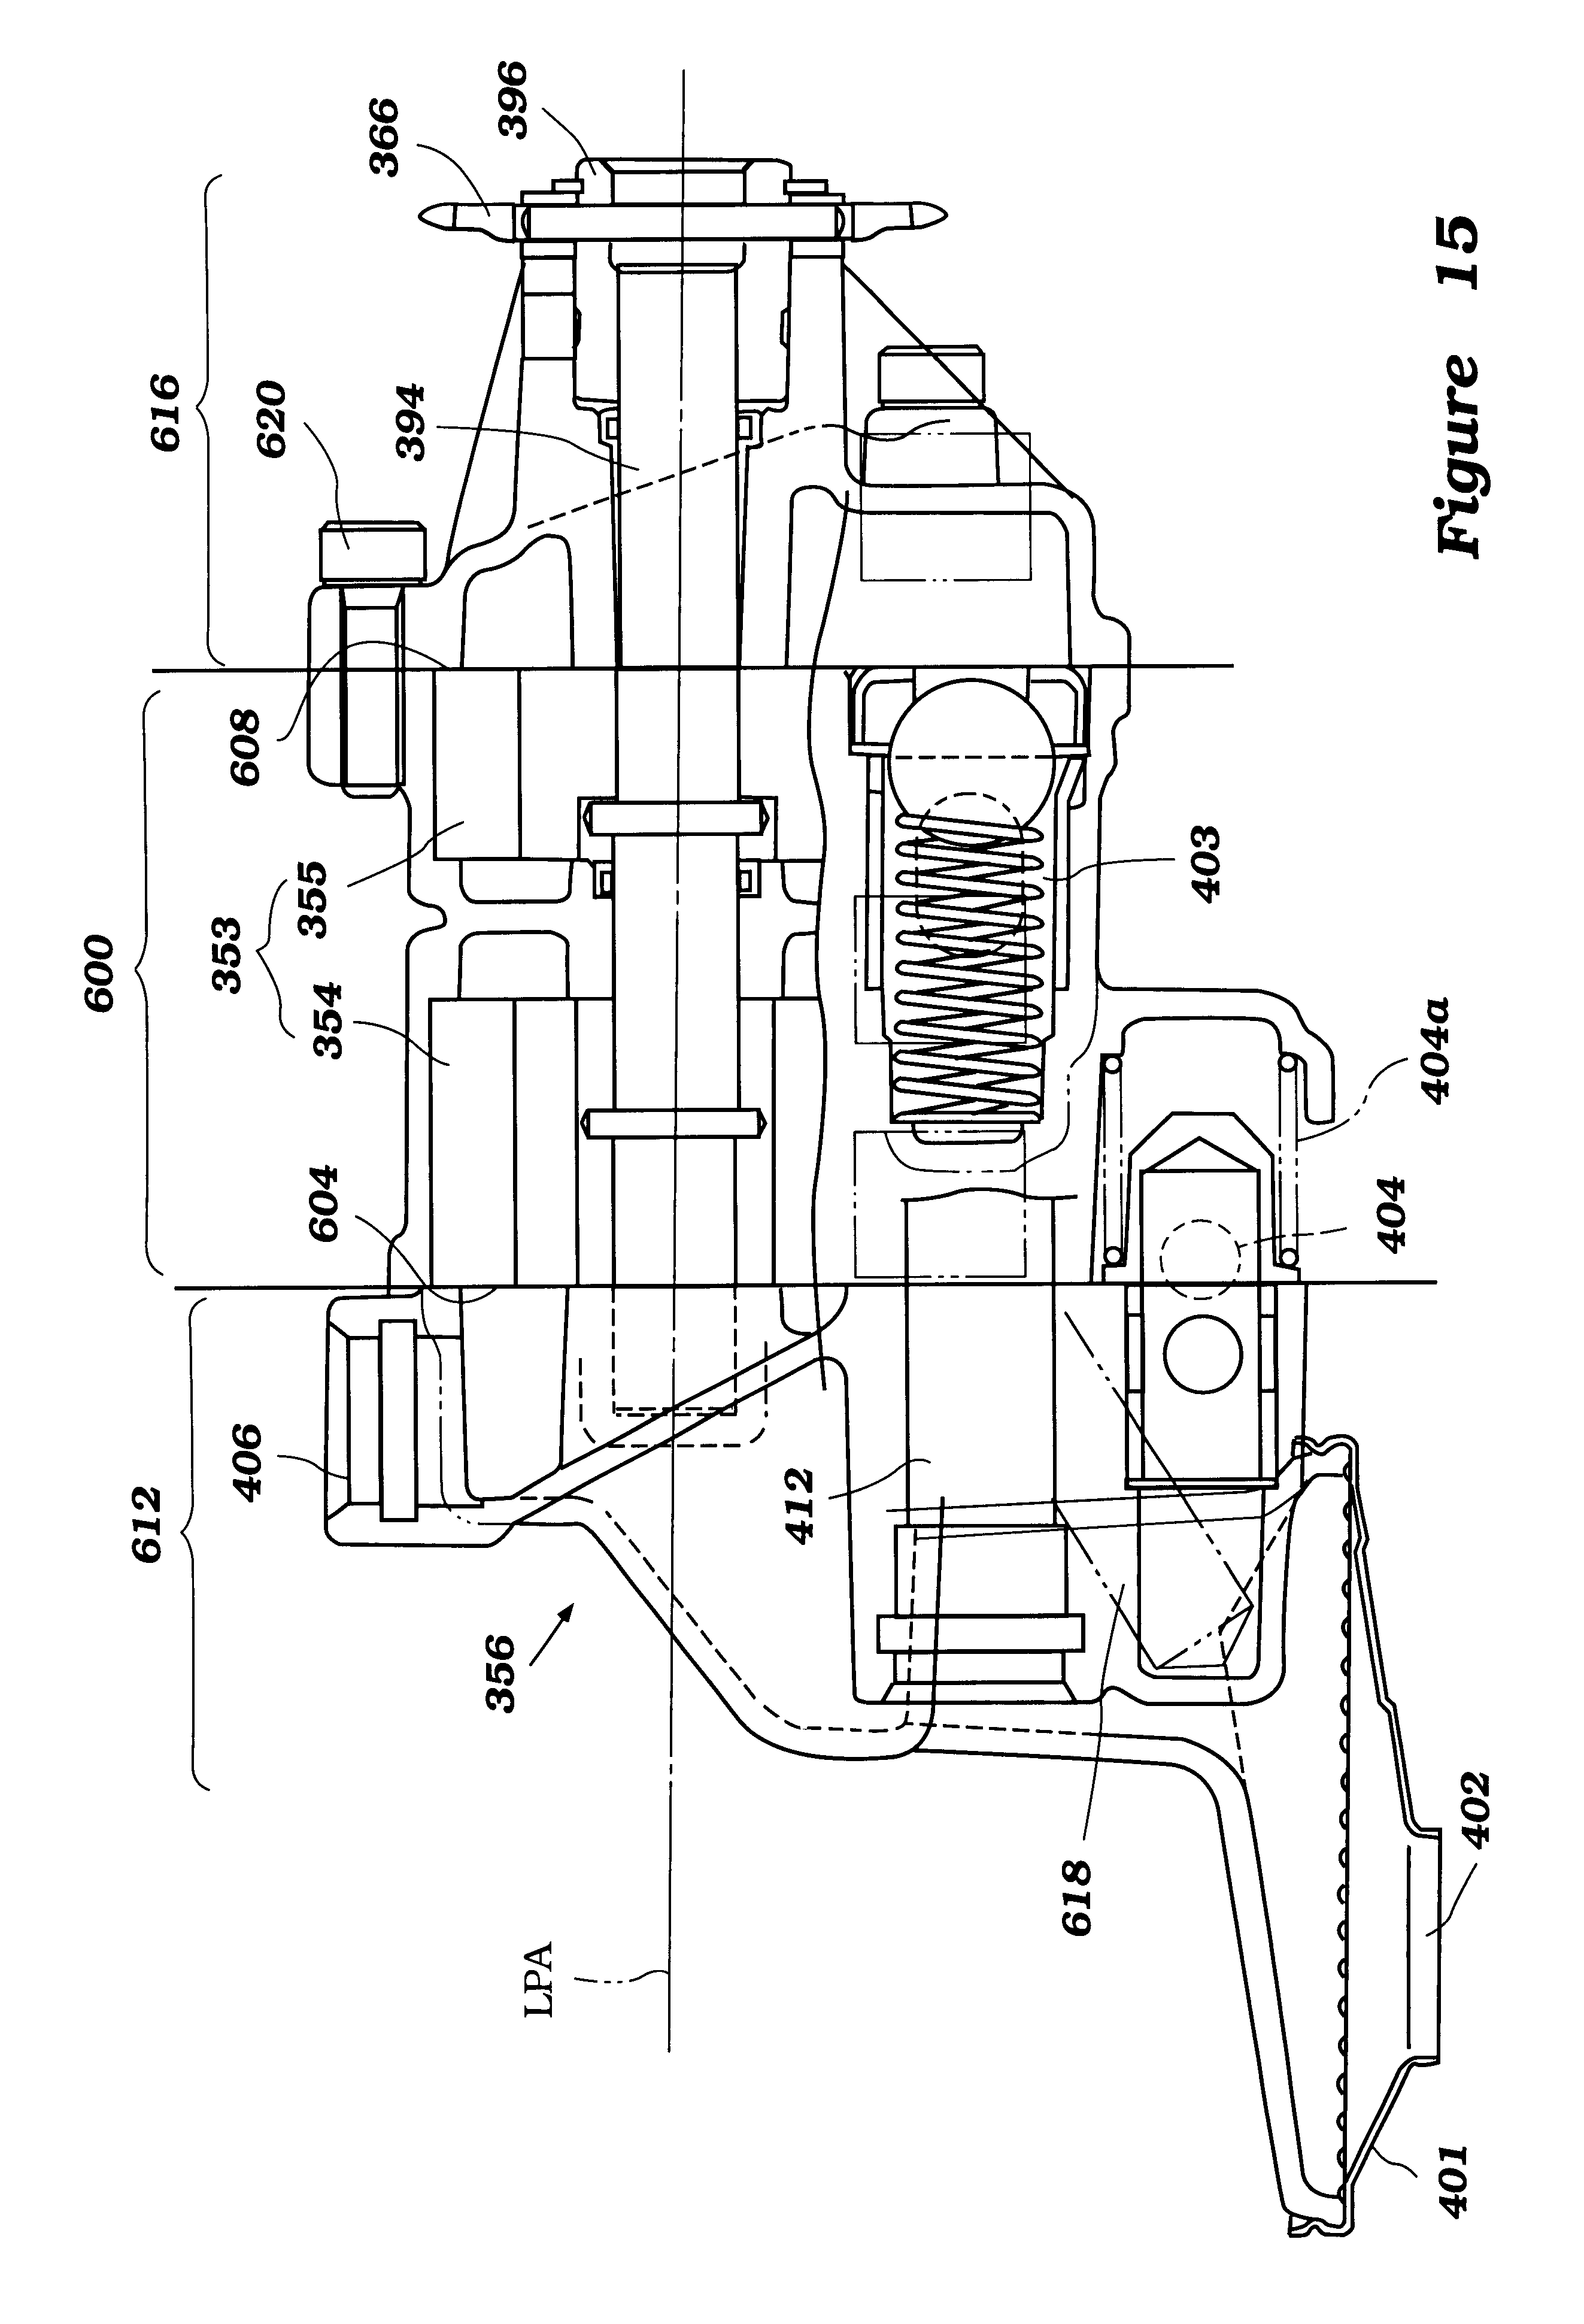 350 Chevy Cooling Diagram Wiring Diagrams Engine Vacuum Line Chevrolet Oiling Imageresizertool Com Lines